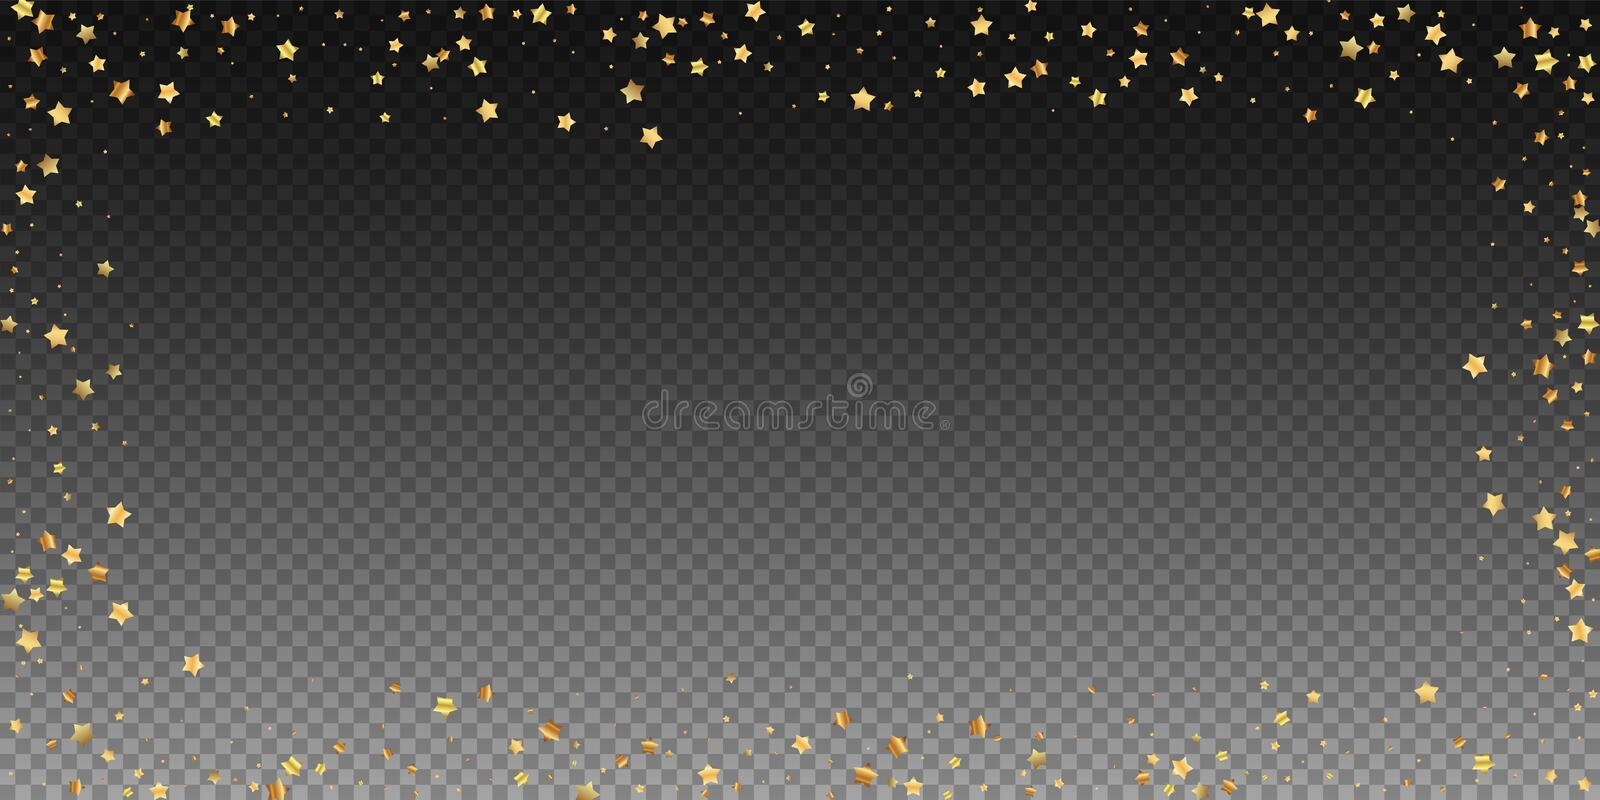 Gold stars random luxury sparkling confetti. Scatt. Ered small gold particles on transparent background. Bold festive overlay template. Beautiful vector royalty free illustration